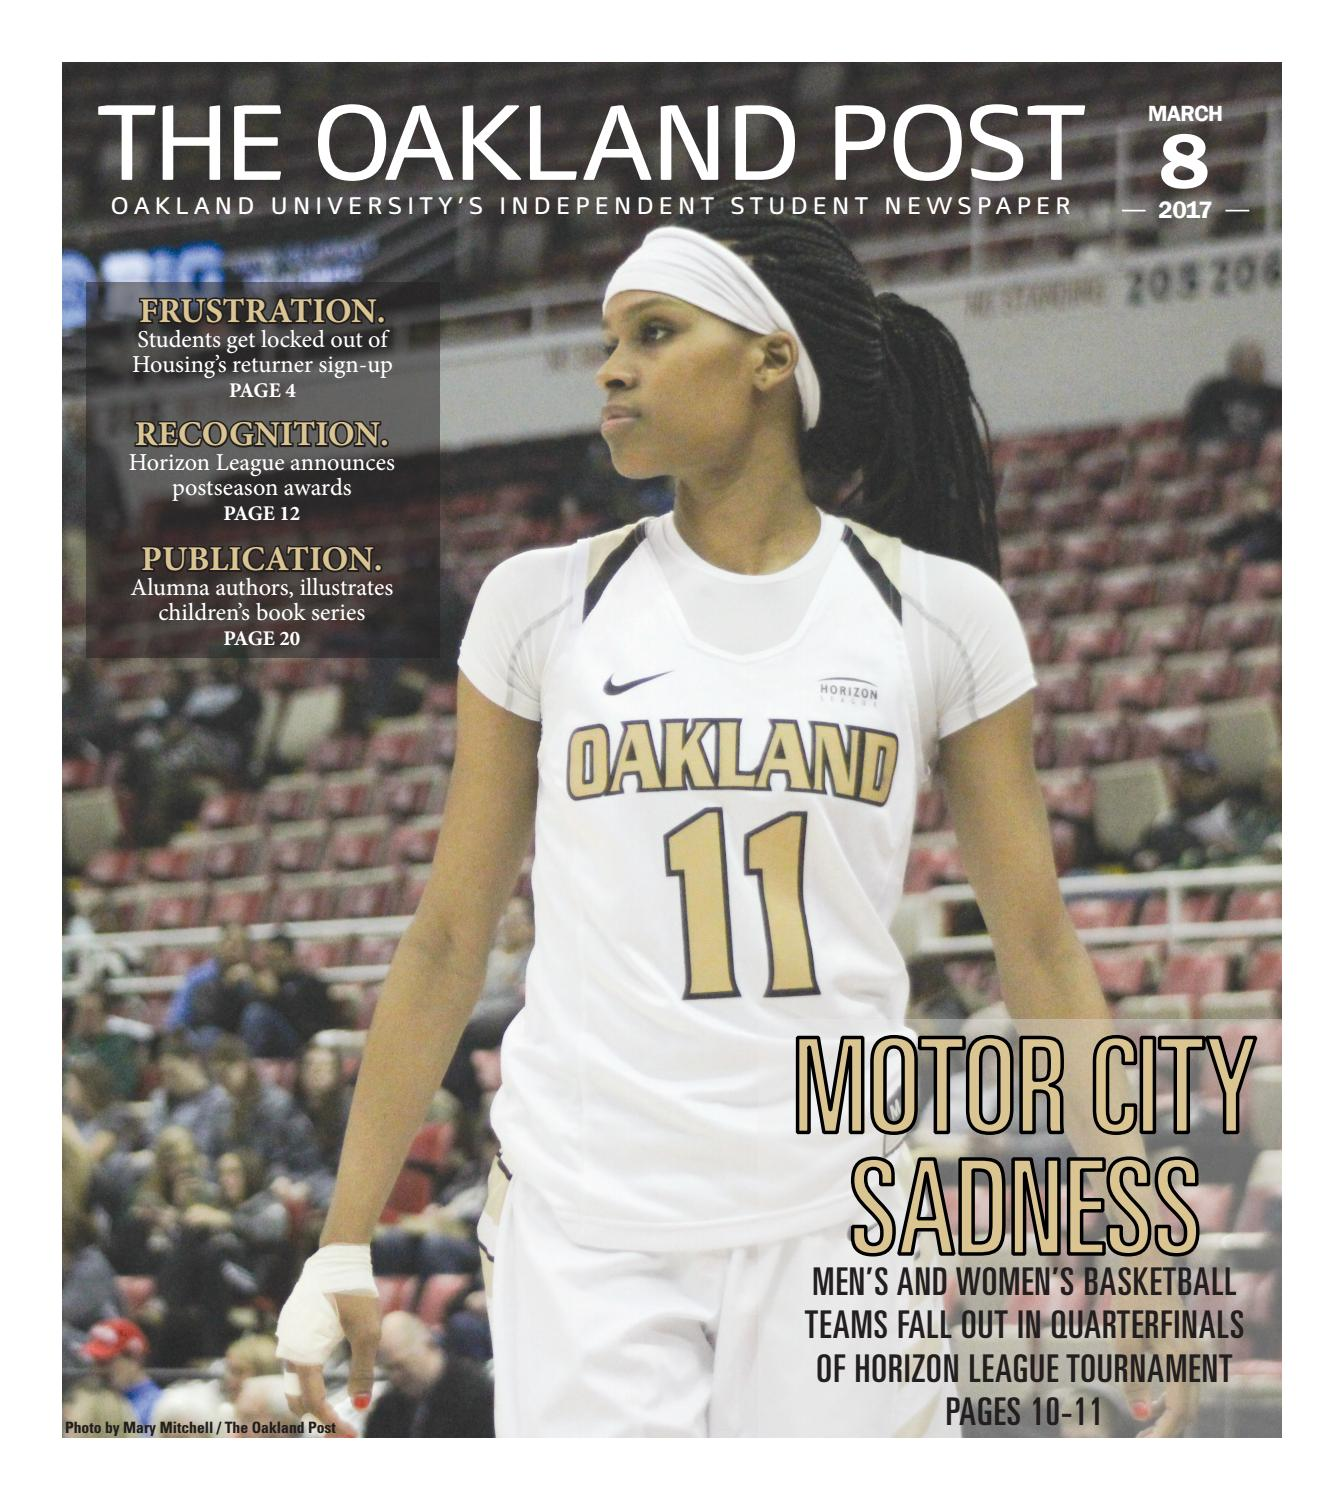 62822f23c3a0 The Oakland Post 3.8.17 by The Oakland Post - issuu